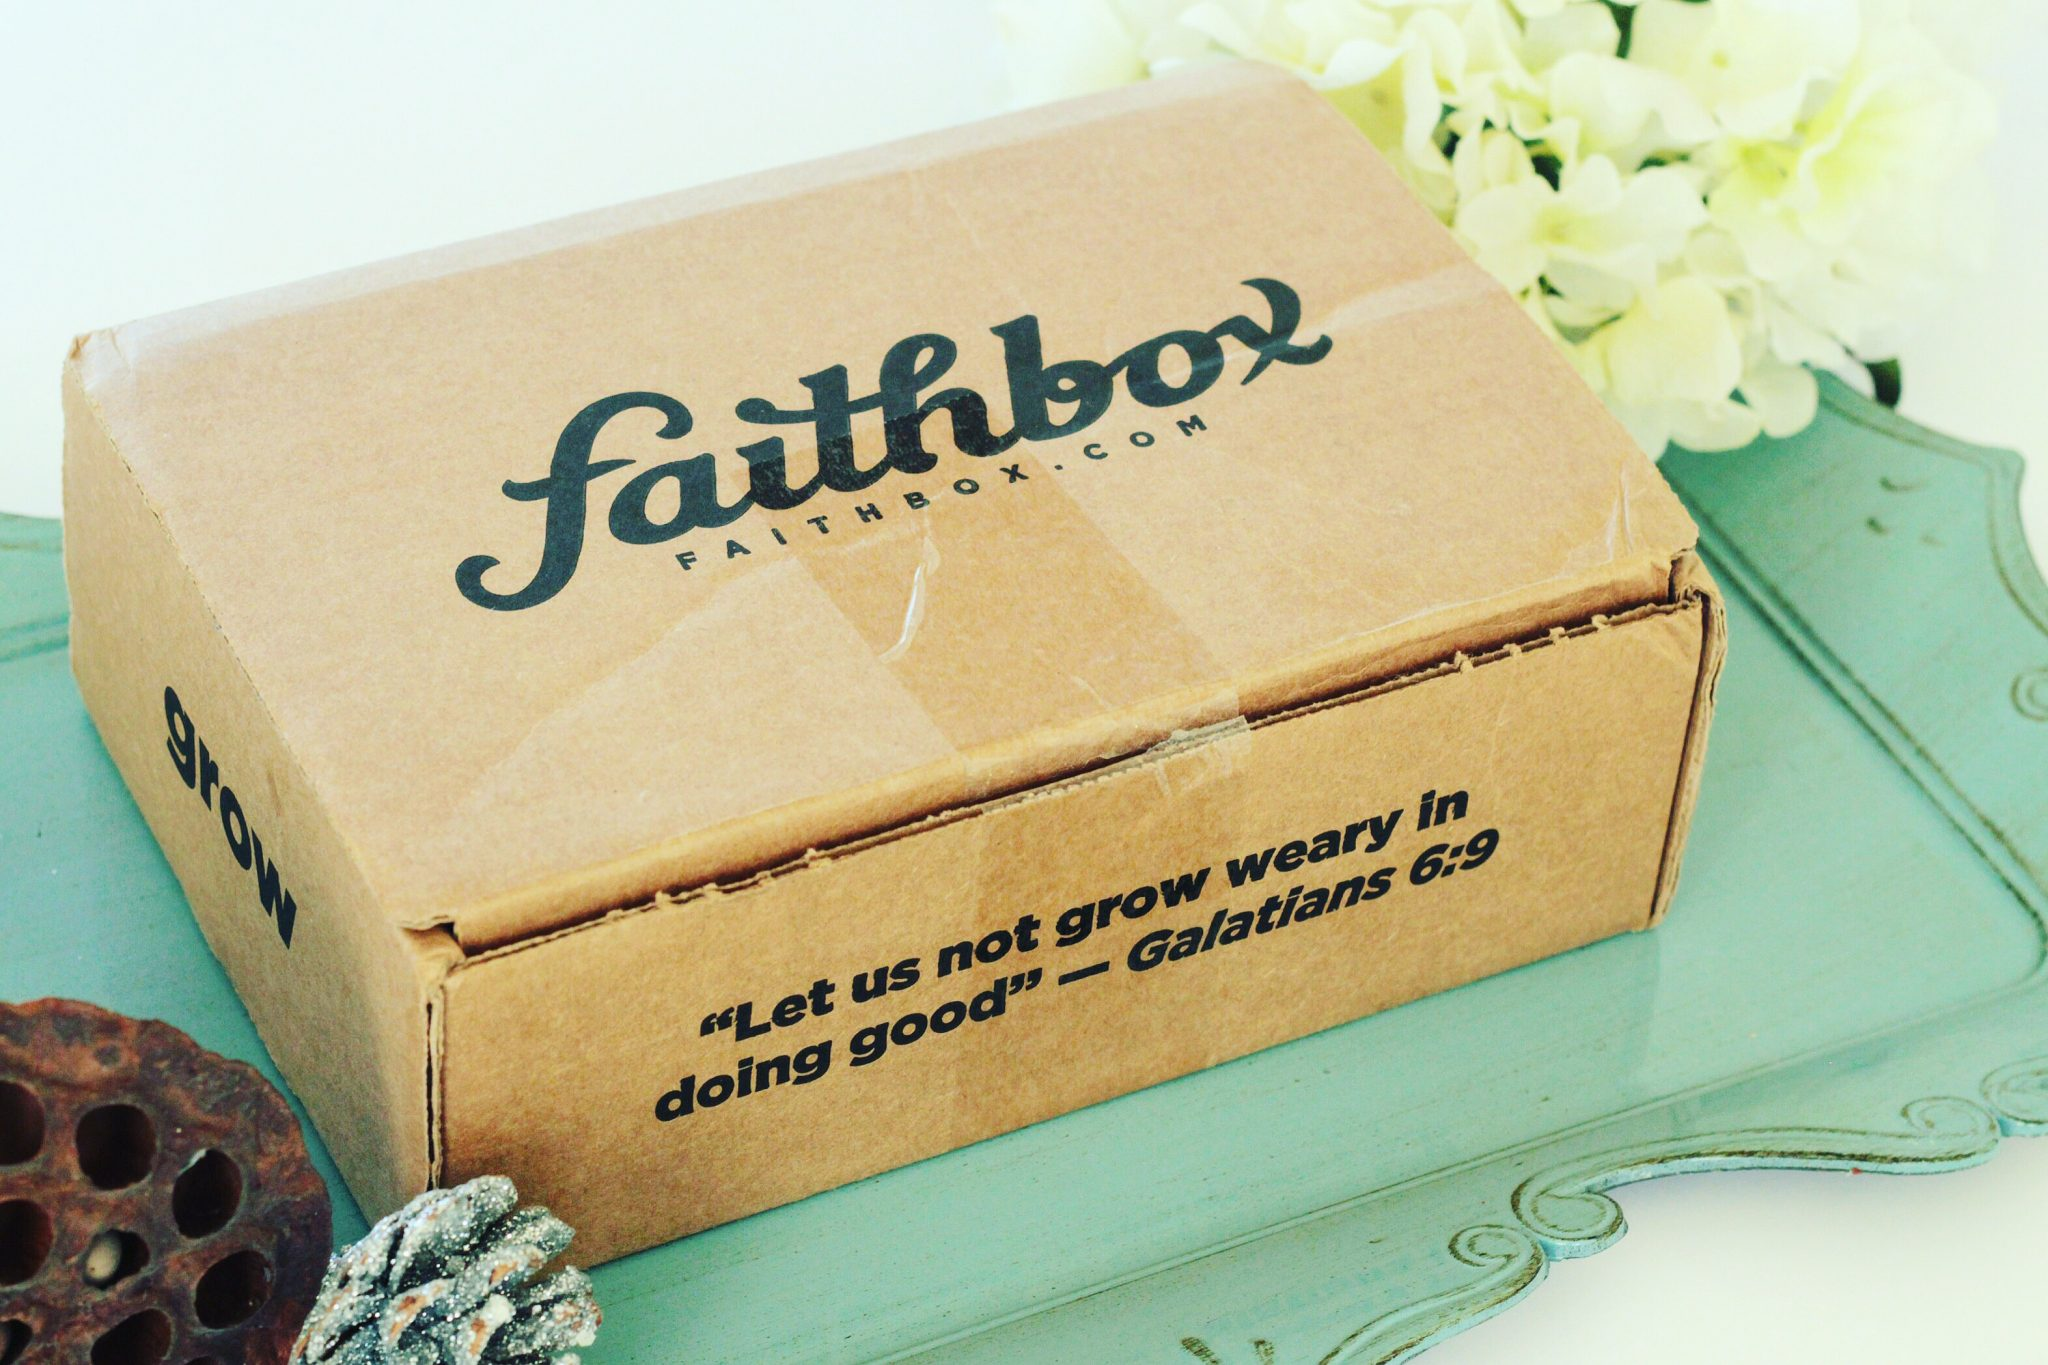 Faithbox Review & Unboxing! graphic